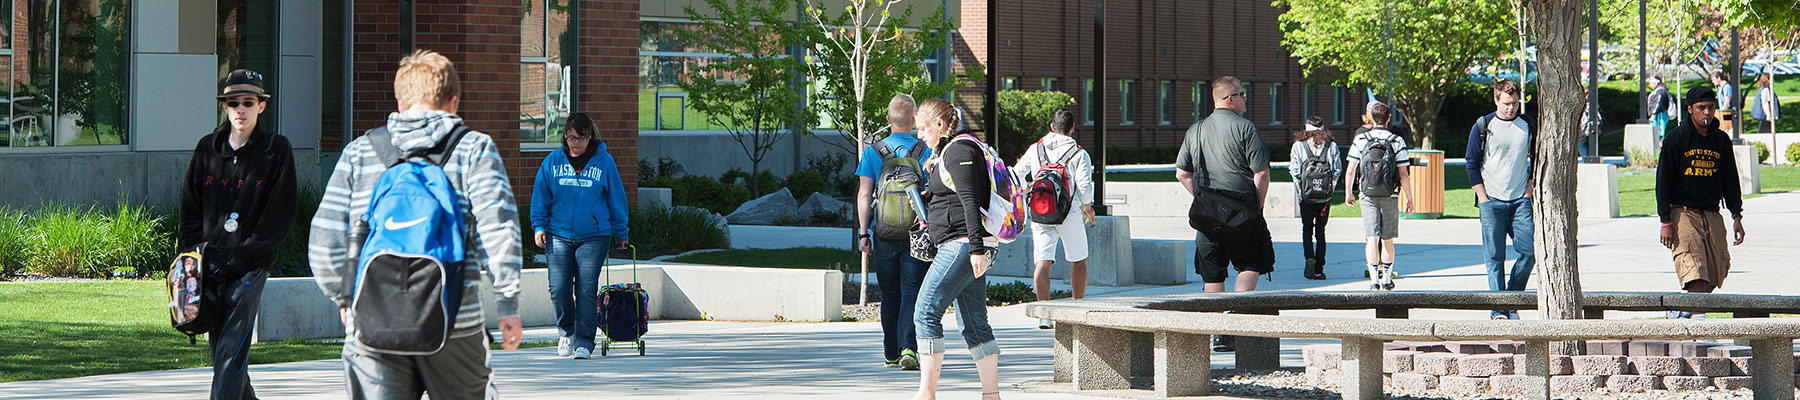 SFCC students walking on campus on a sunny, springday